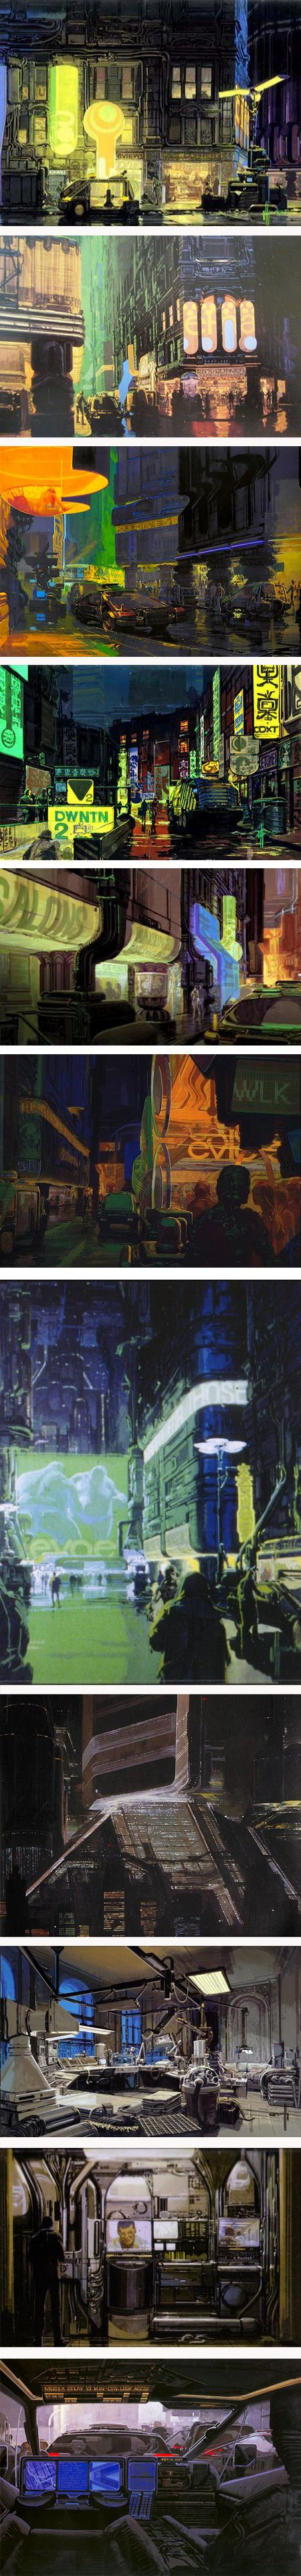 A massive influence on my FMP in general. I love Blade Runners visual style, and was the main inspiration for the Lower City. I love the contrast if luminescent colours on dark dank backgrounds. I used a lot of influence from these images in my final piece, such as the colour pallet and so on.